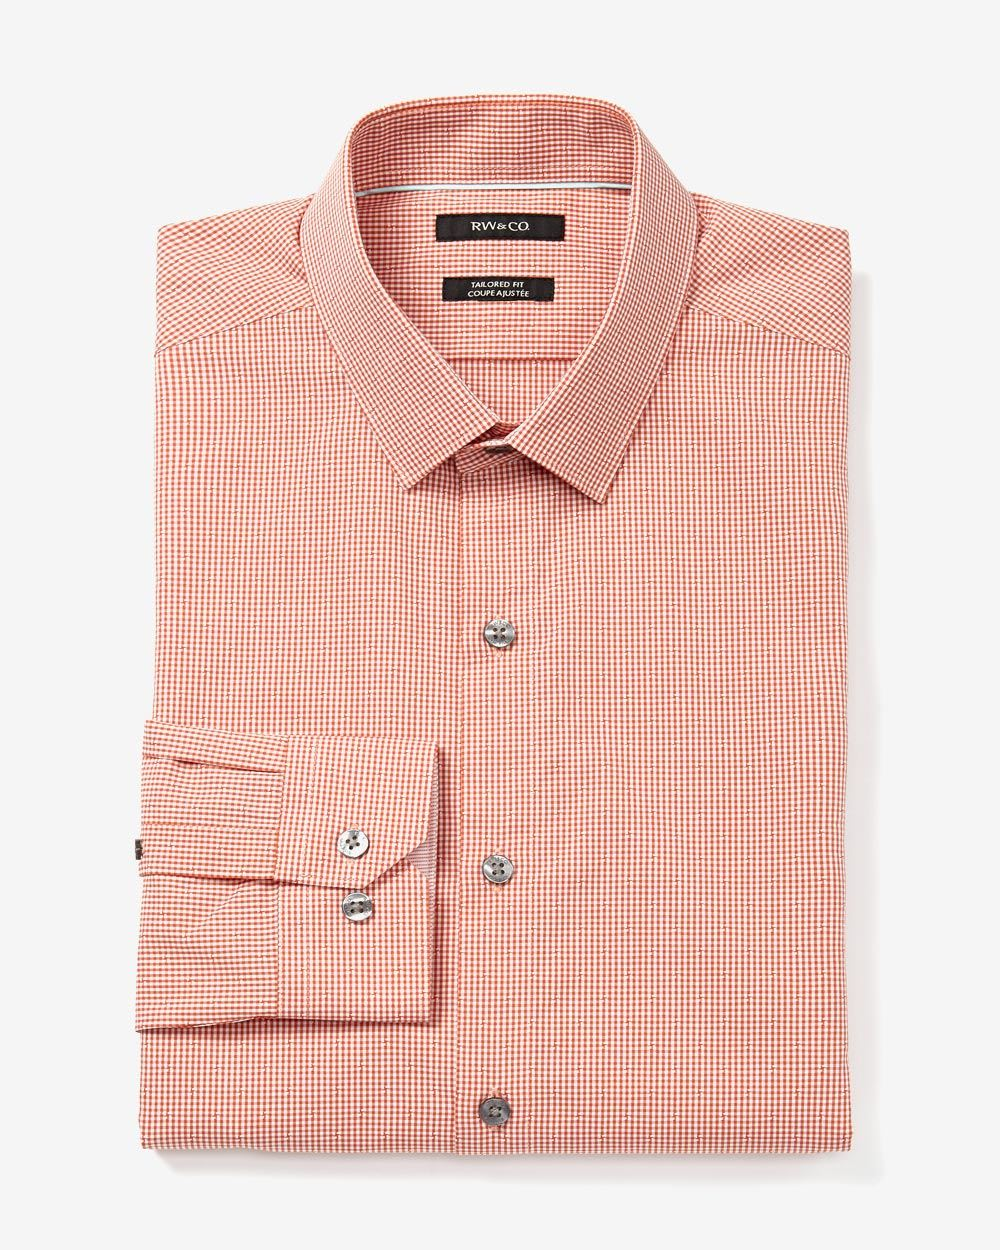 Tailored fit dress shirt rw co for Tailor dress shirt cost